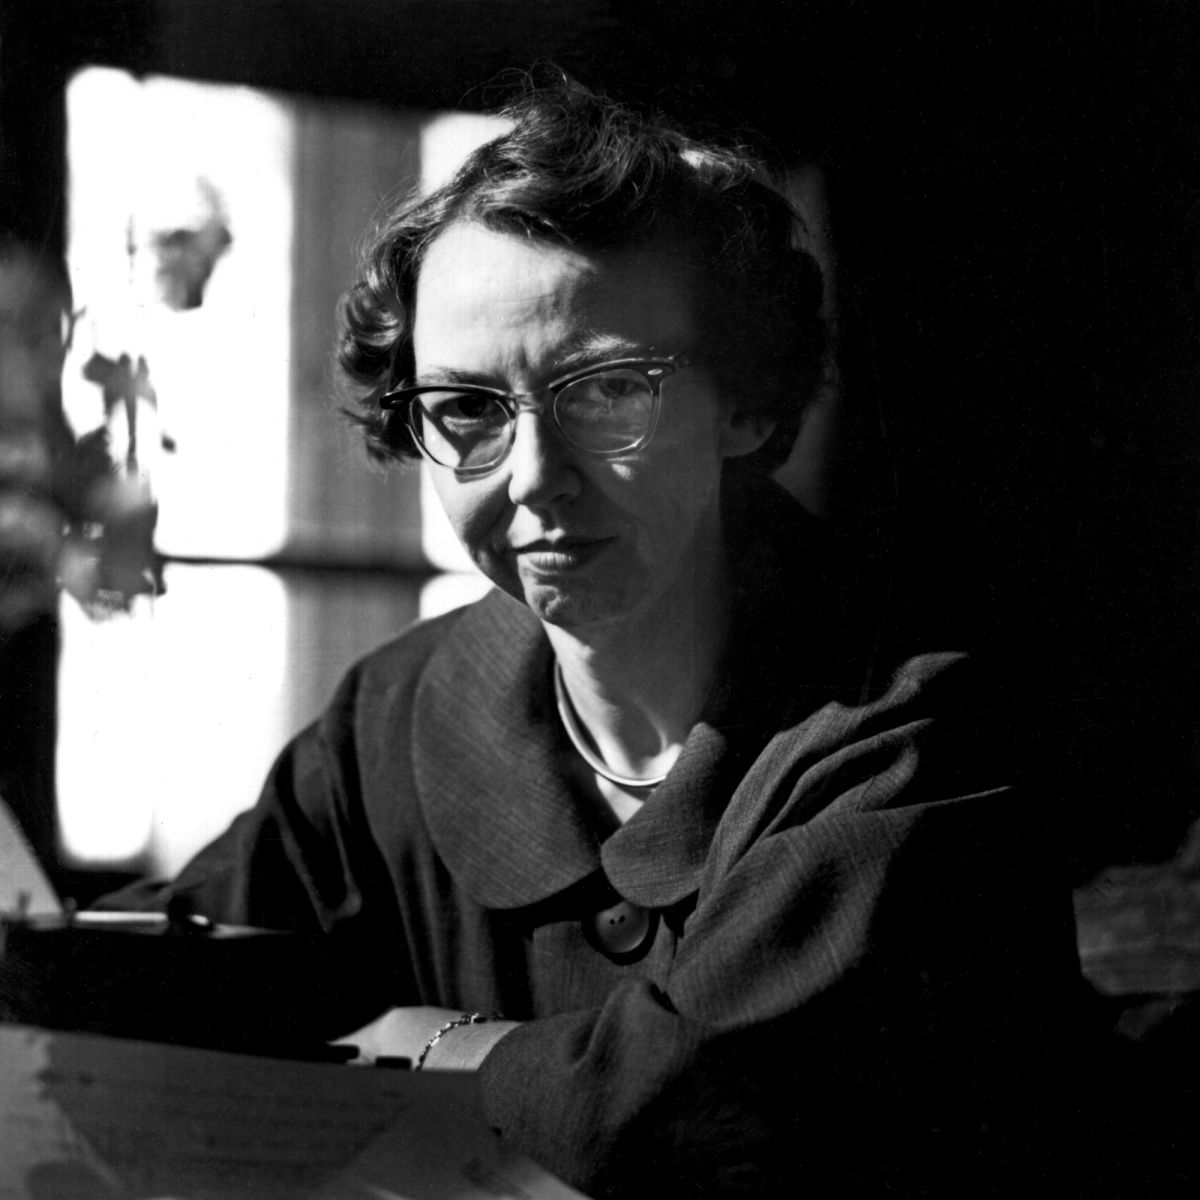 There's many a bestseller that could have been prevented by a good teacher. FLANNERY O'CONNOR  #amwriting #writing #writinglife <br>http://pic.twitter.com/B1QDBXqMuS